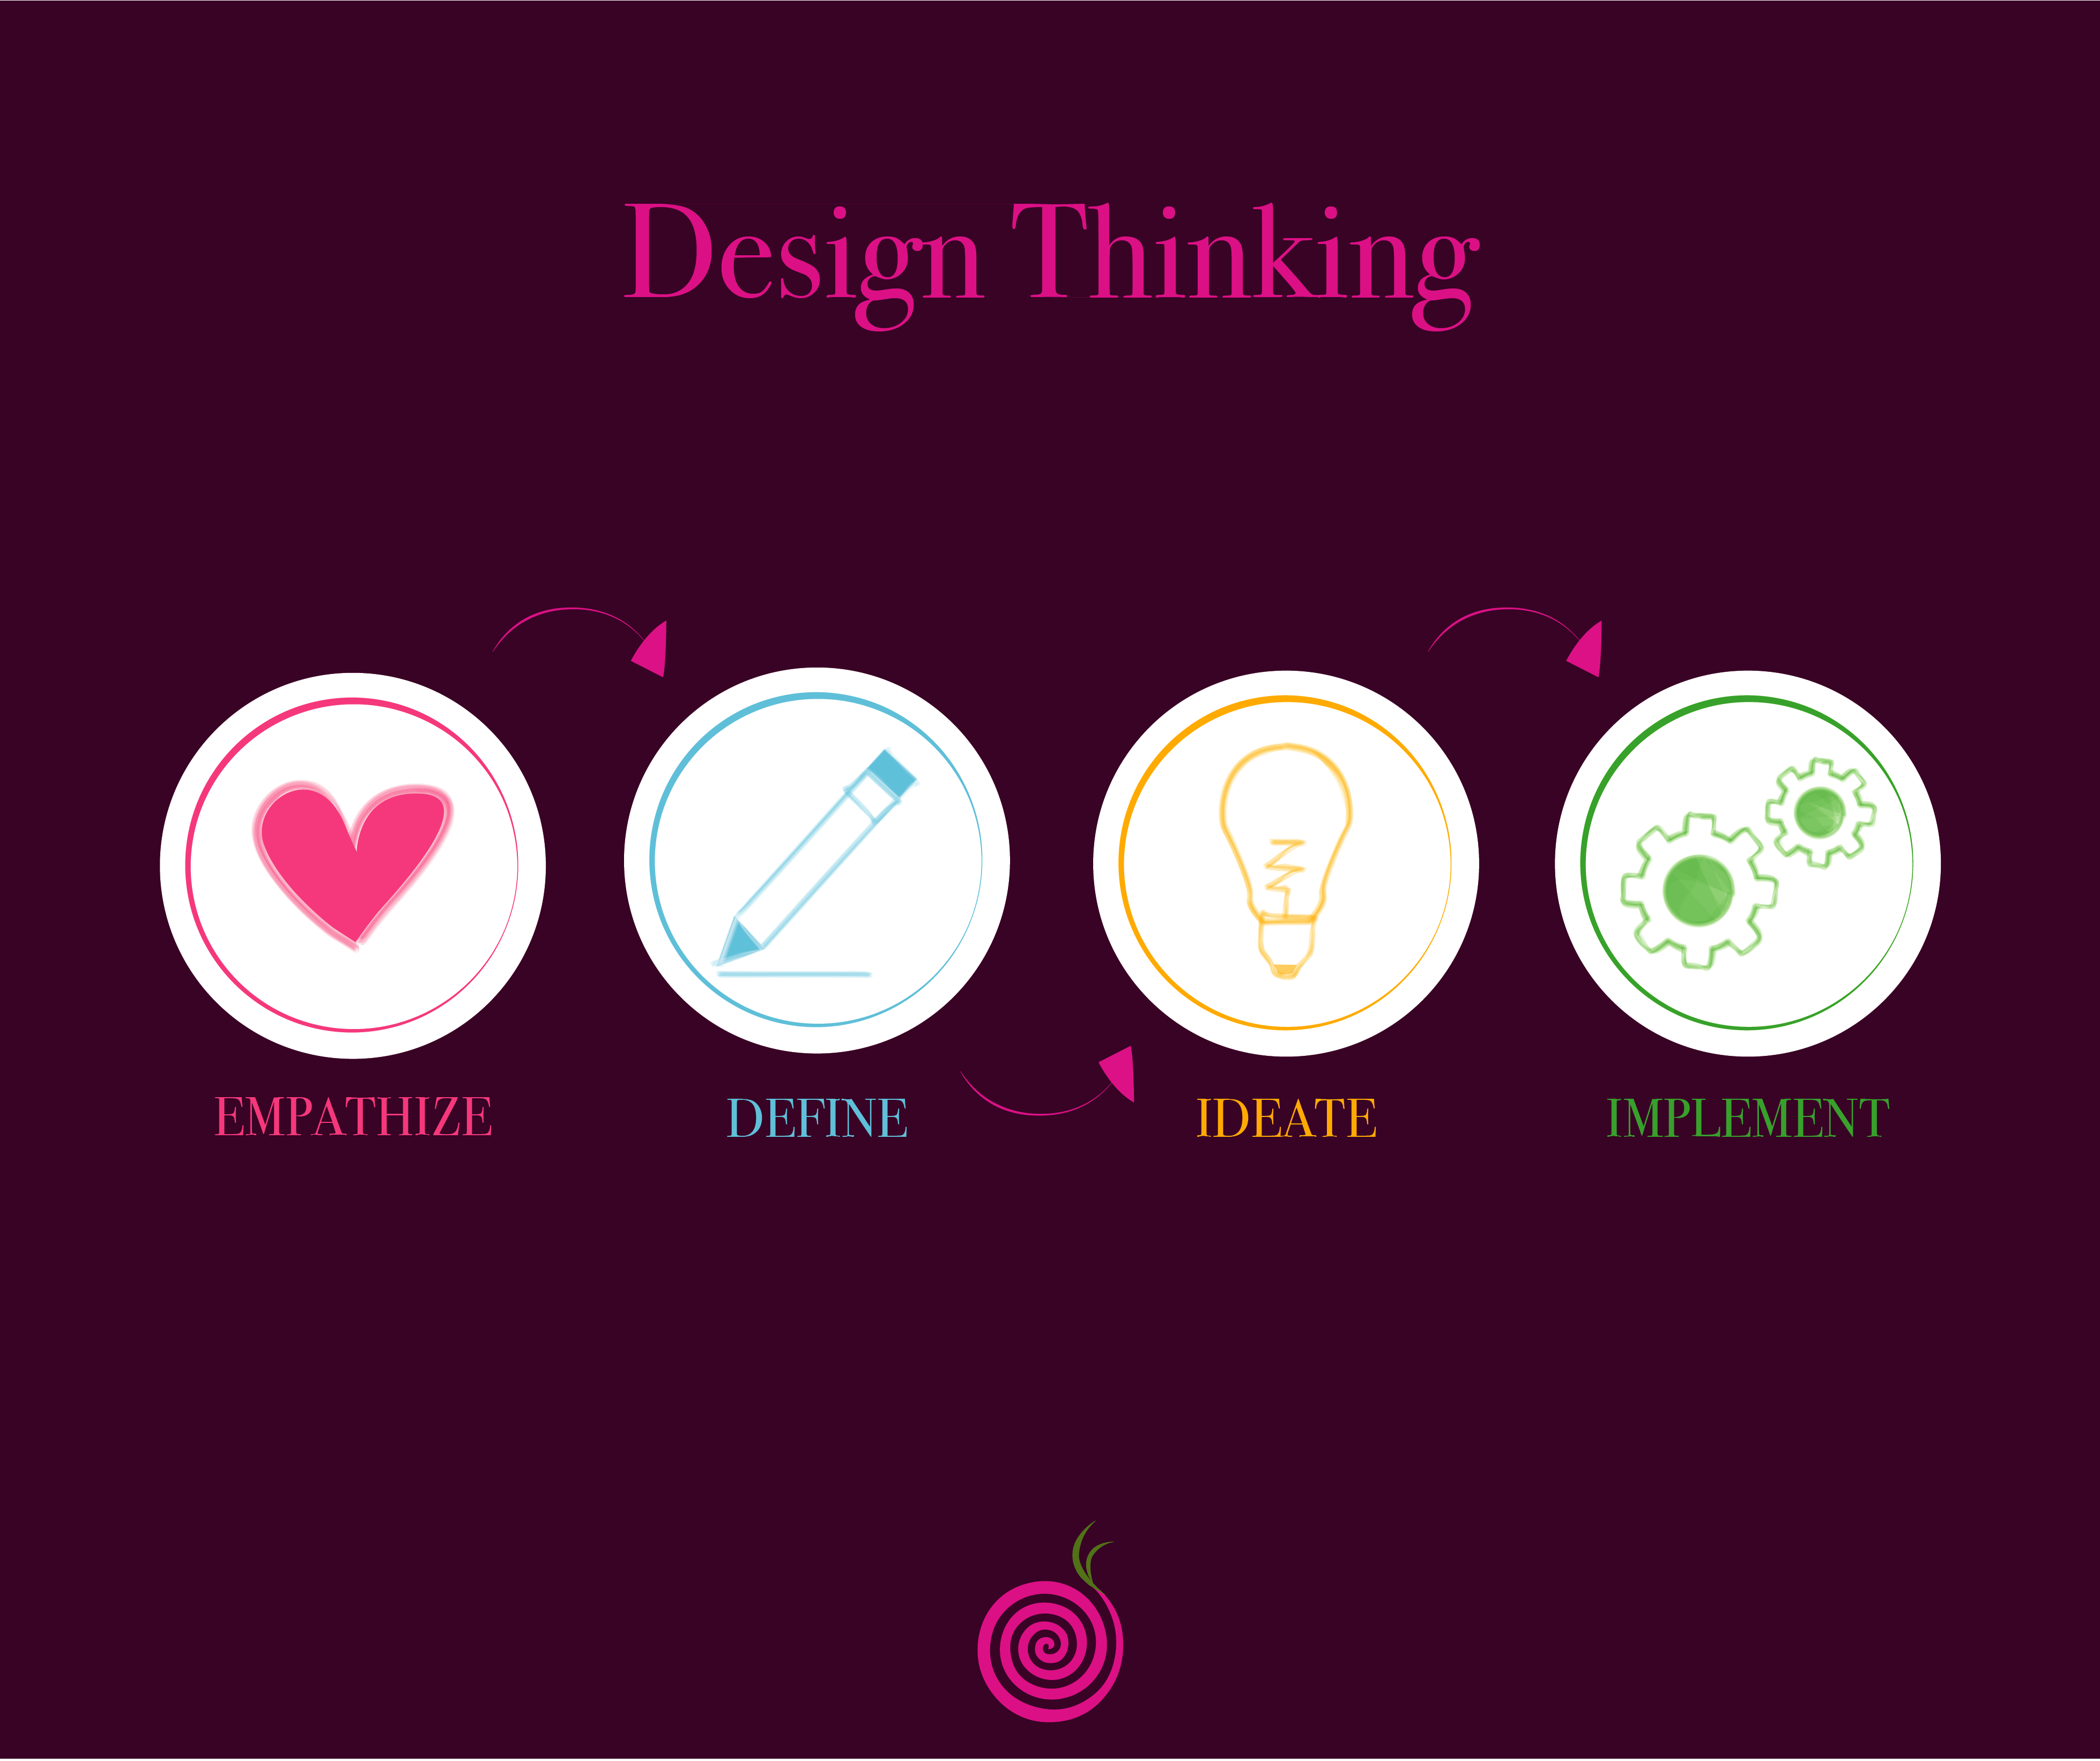 Post design thinking